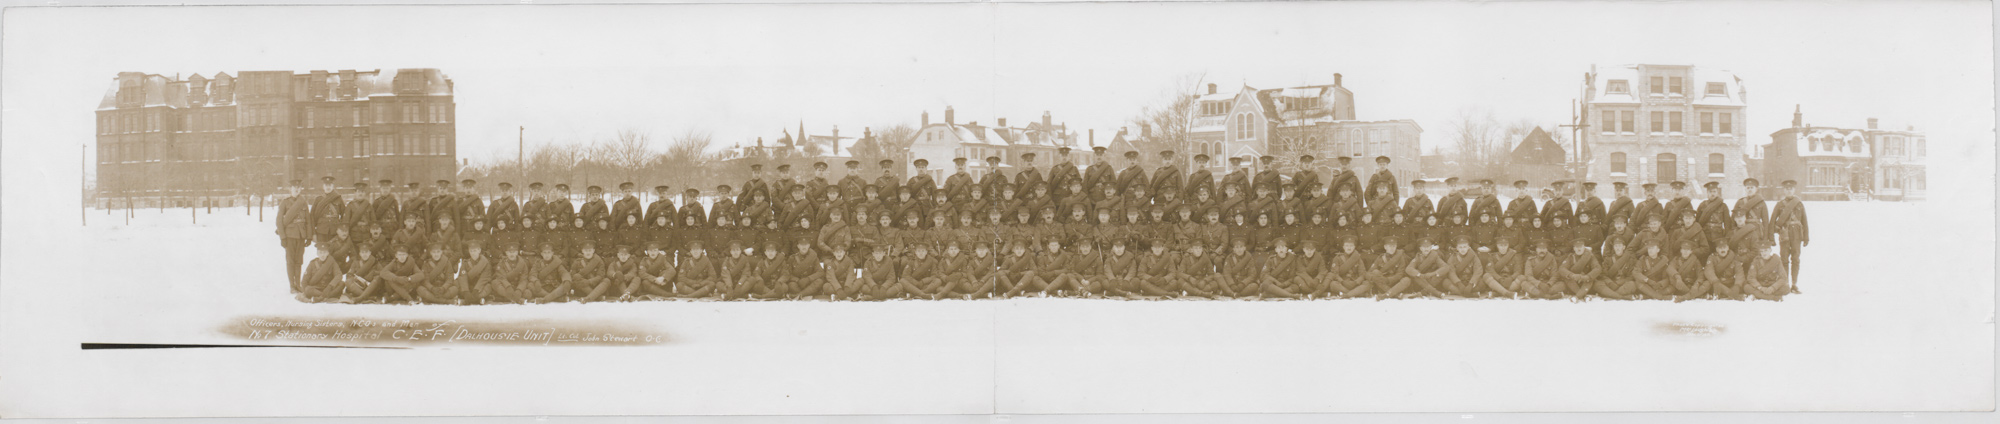 Canadian troops prior to departure for Europe.